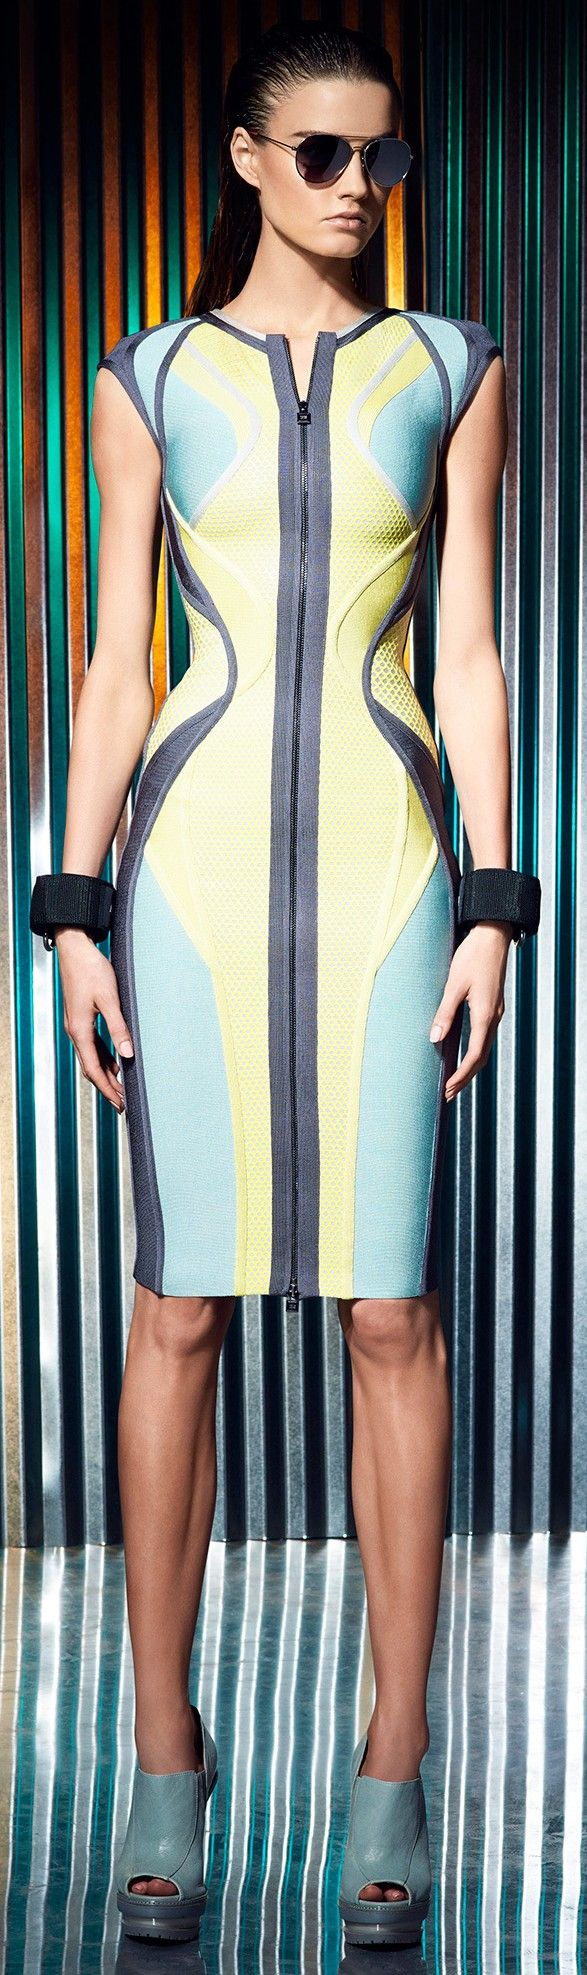 Herve Leger Resort 2014 ♥✤ | Keep the Smiling | BeStayBeautiful✿♥️PM